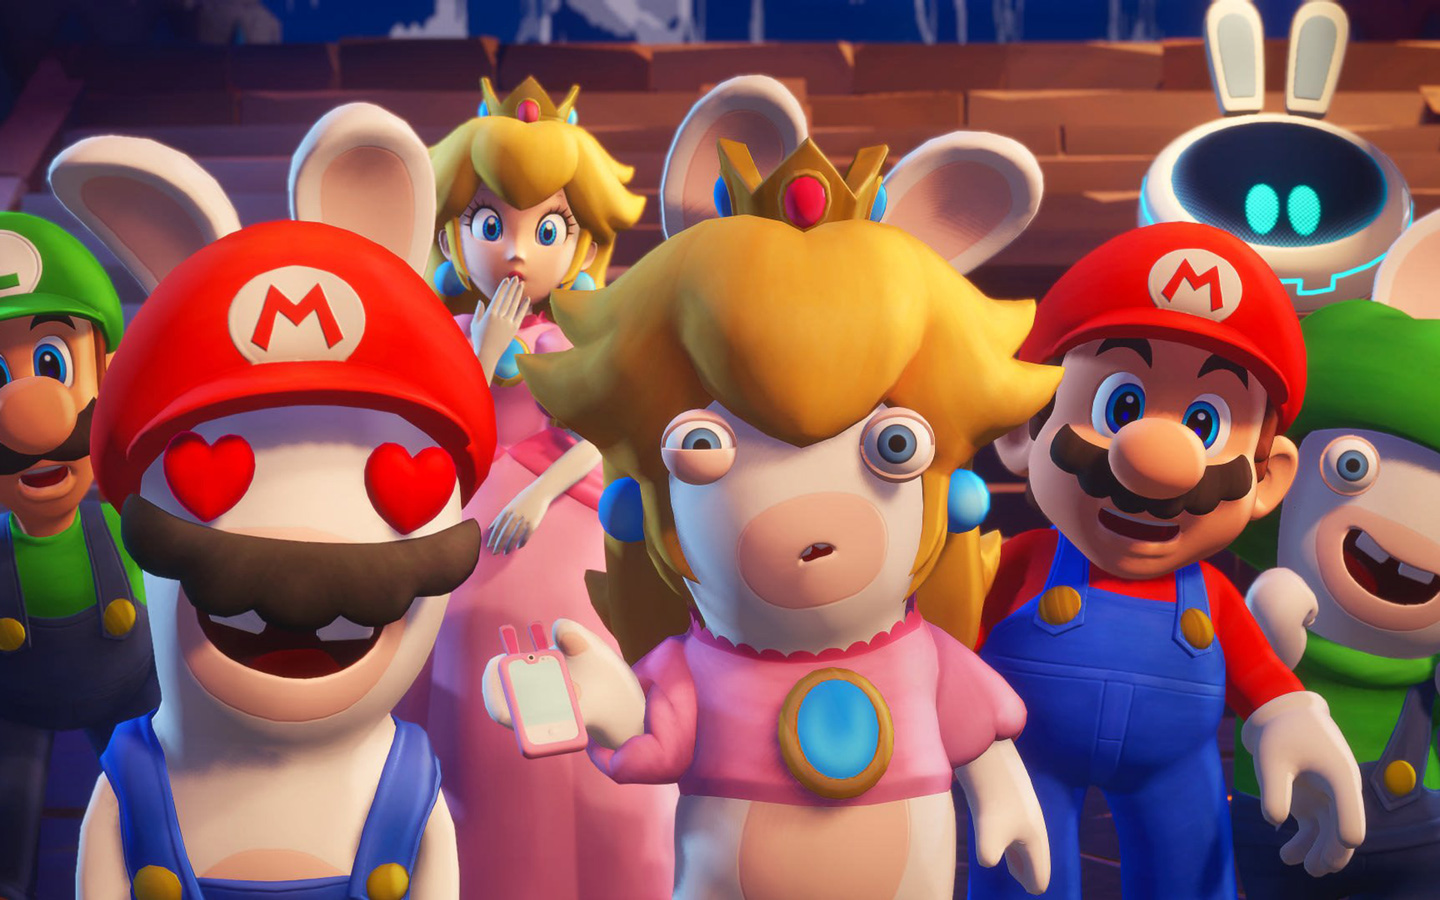 Free Mario + Rabbids: Sparks of Hope Wallpaper in 1440x900